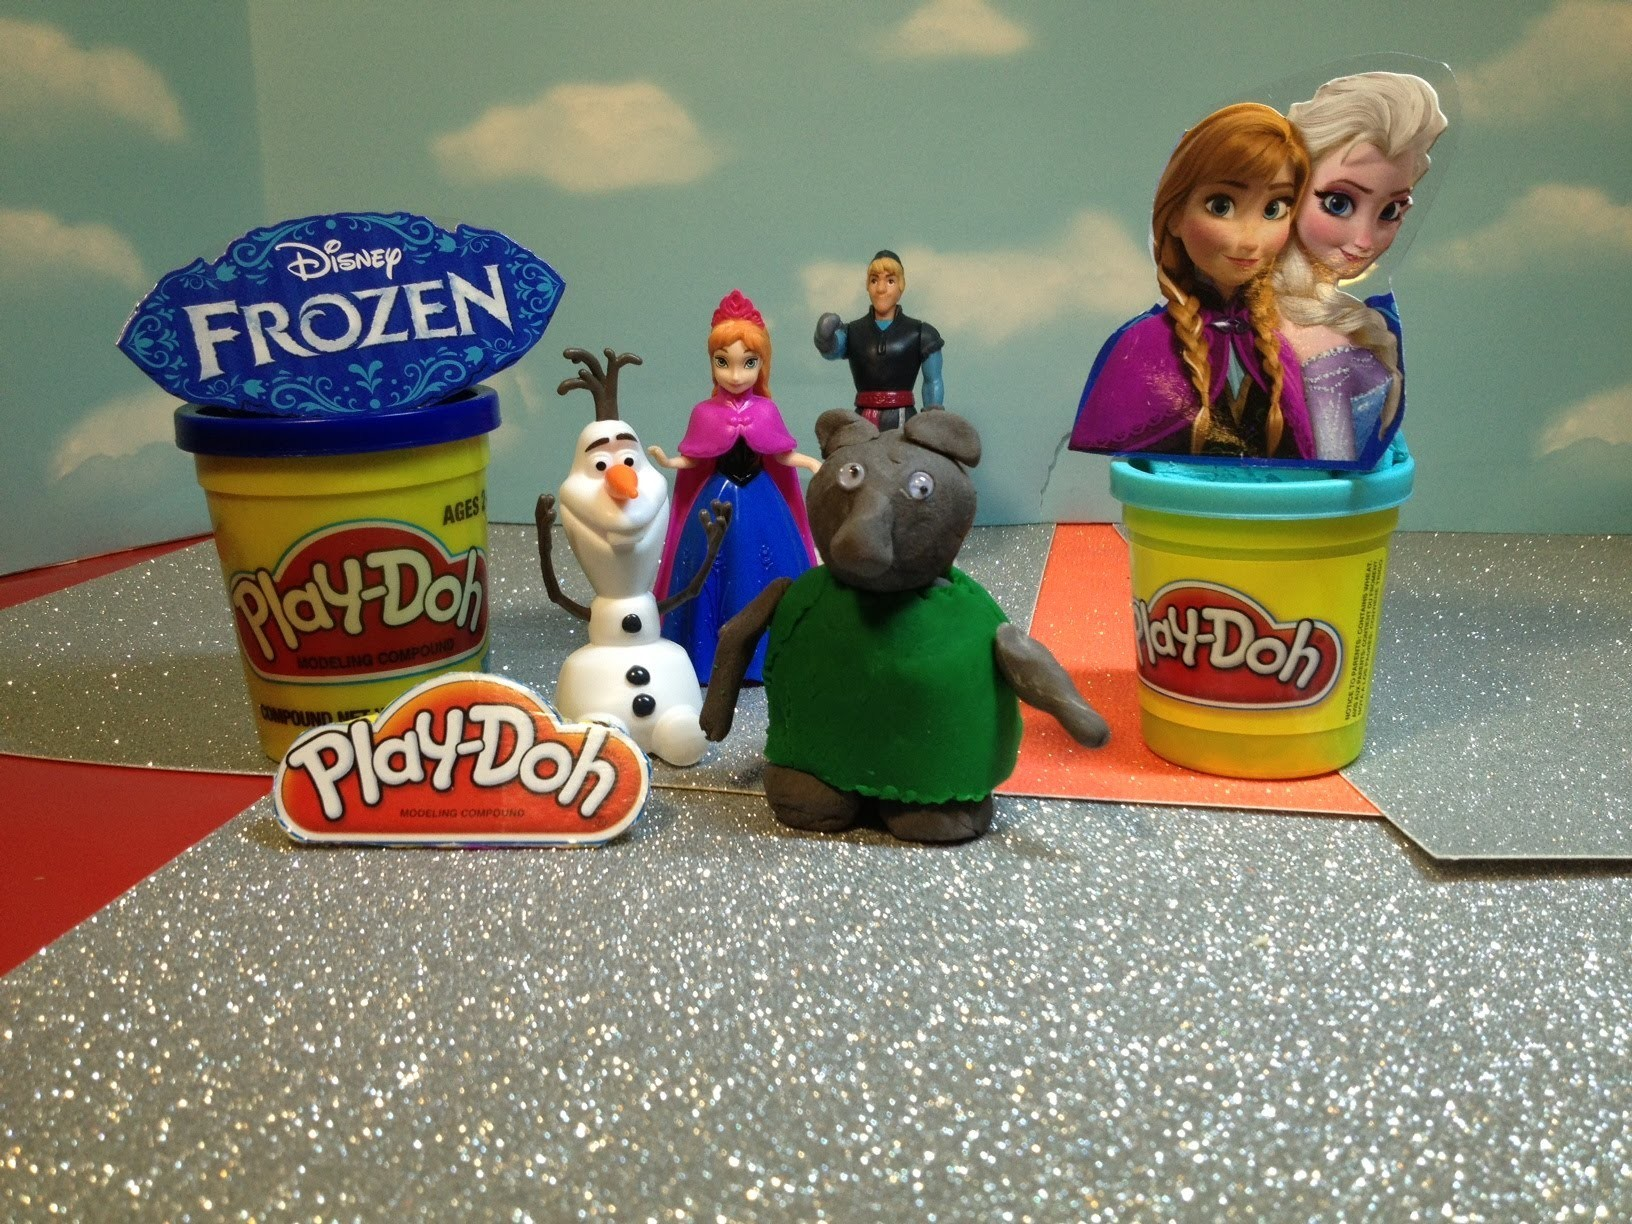 FROZEN PLAY-DOH Tutorial How to Make the Trolls From Play Doh Disney Frozen  Playset